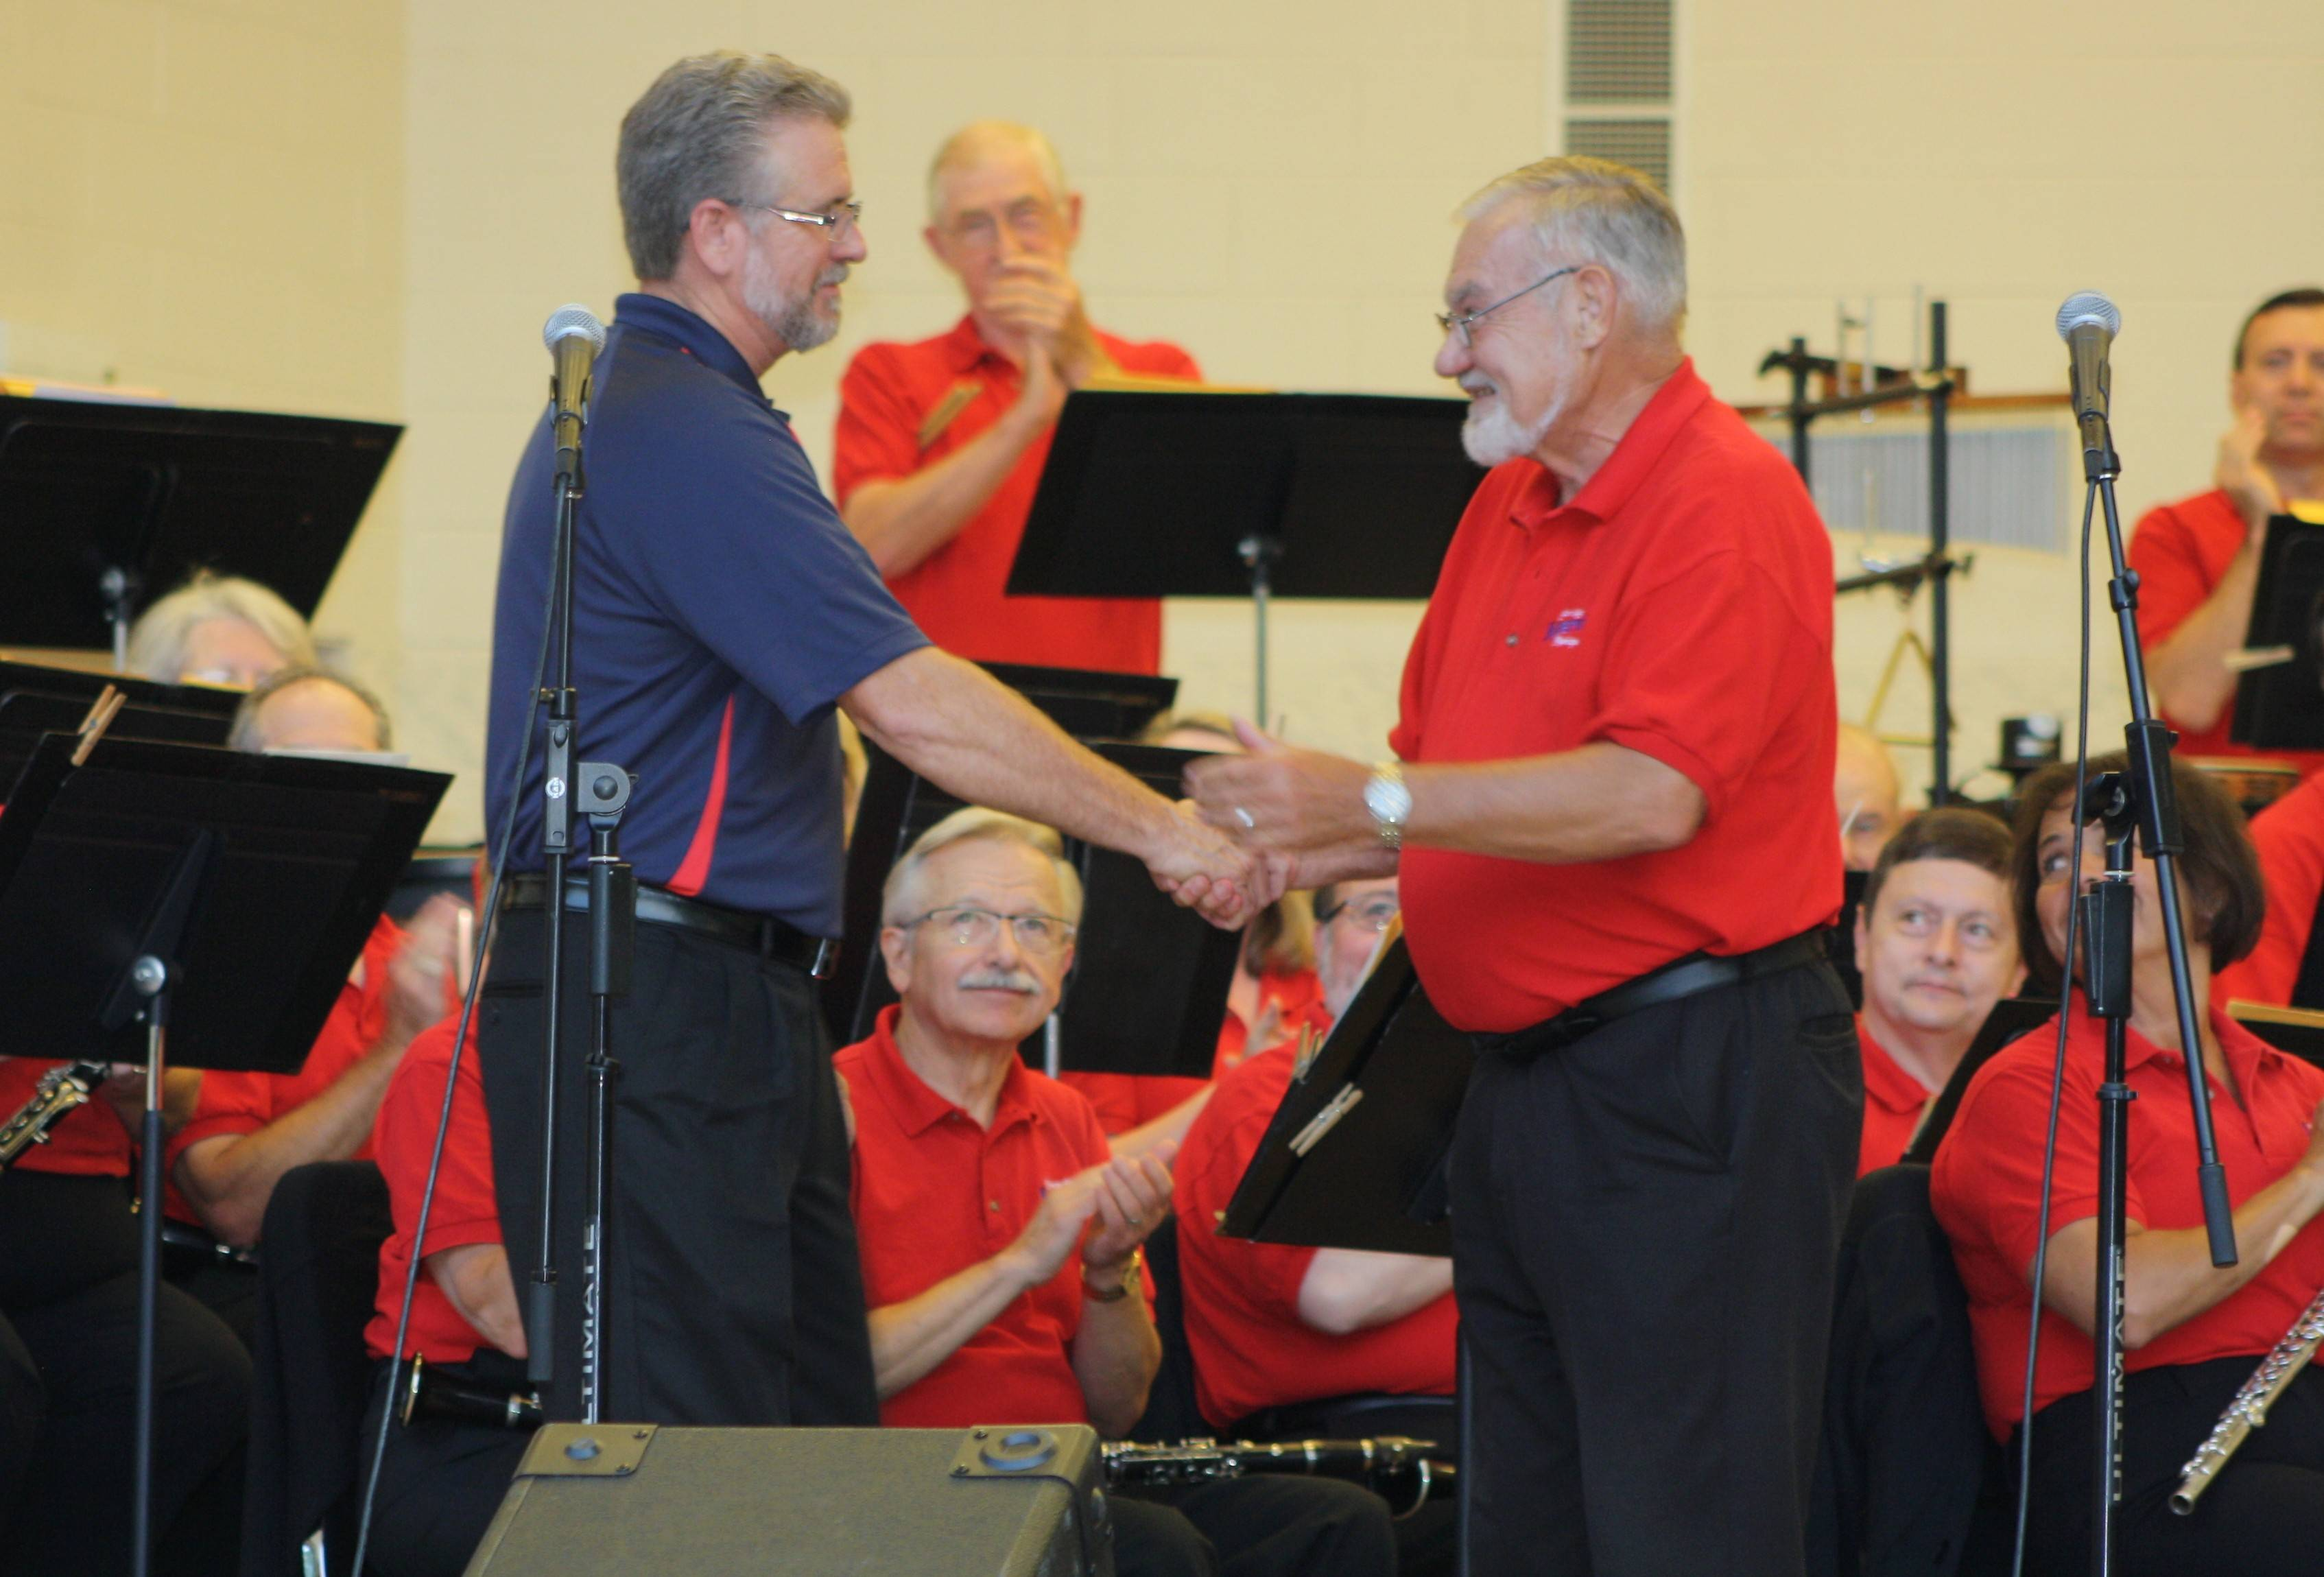 Bruce Beach, left, president-elect of the Texas Bandmasters Association, congratulates Ron Keller, director of the Naperville Municipal Band, on being invited to perform at the prestigious Texas Bandmasters Association convention in 2015.